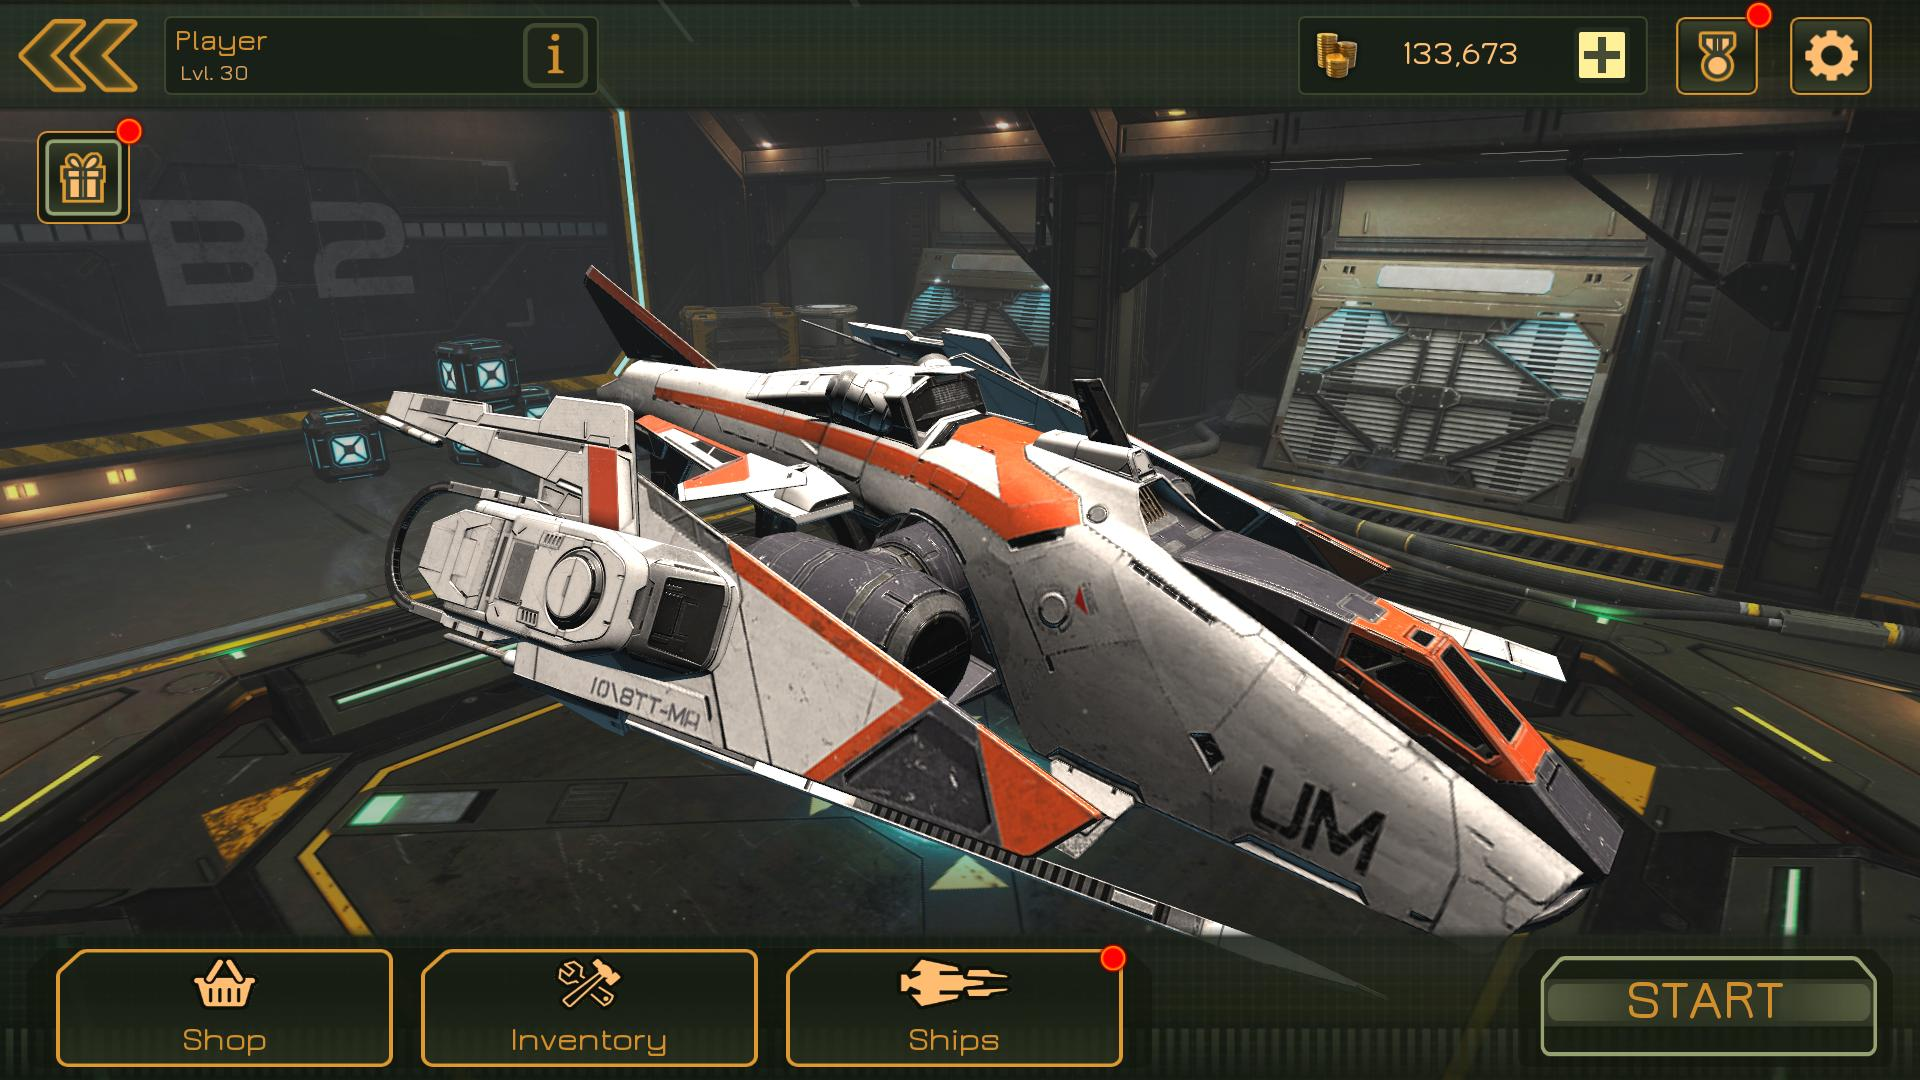 Subdivision Infinity 3D Space Shooter 1.0.7162 Screenshot 18